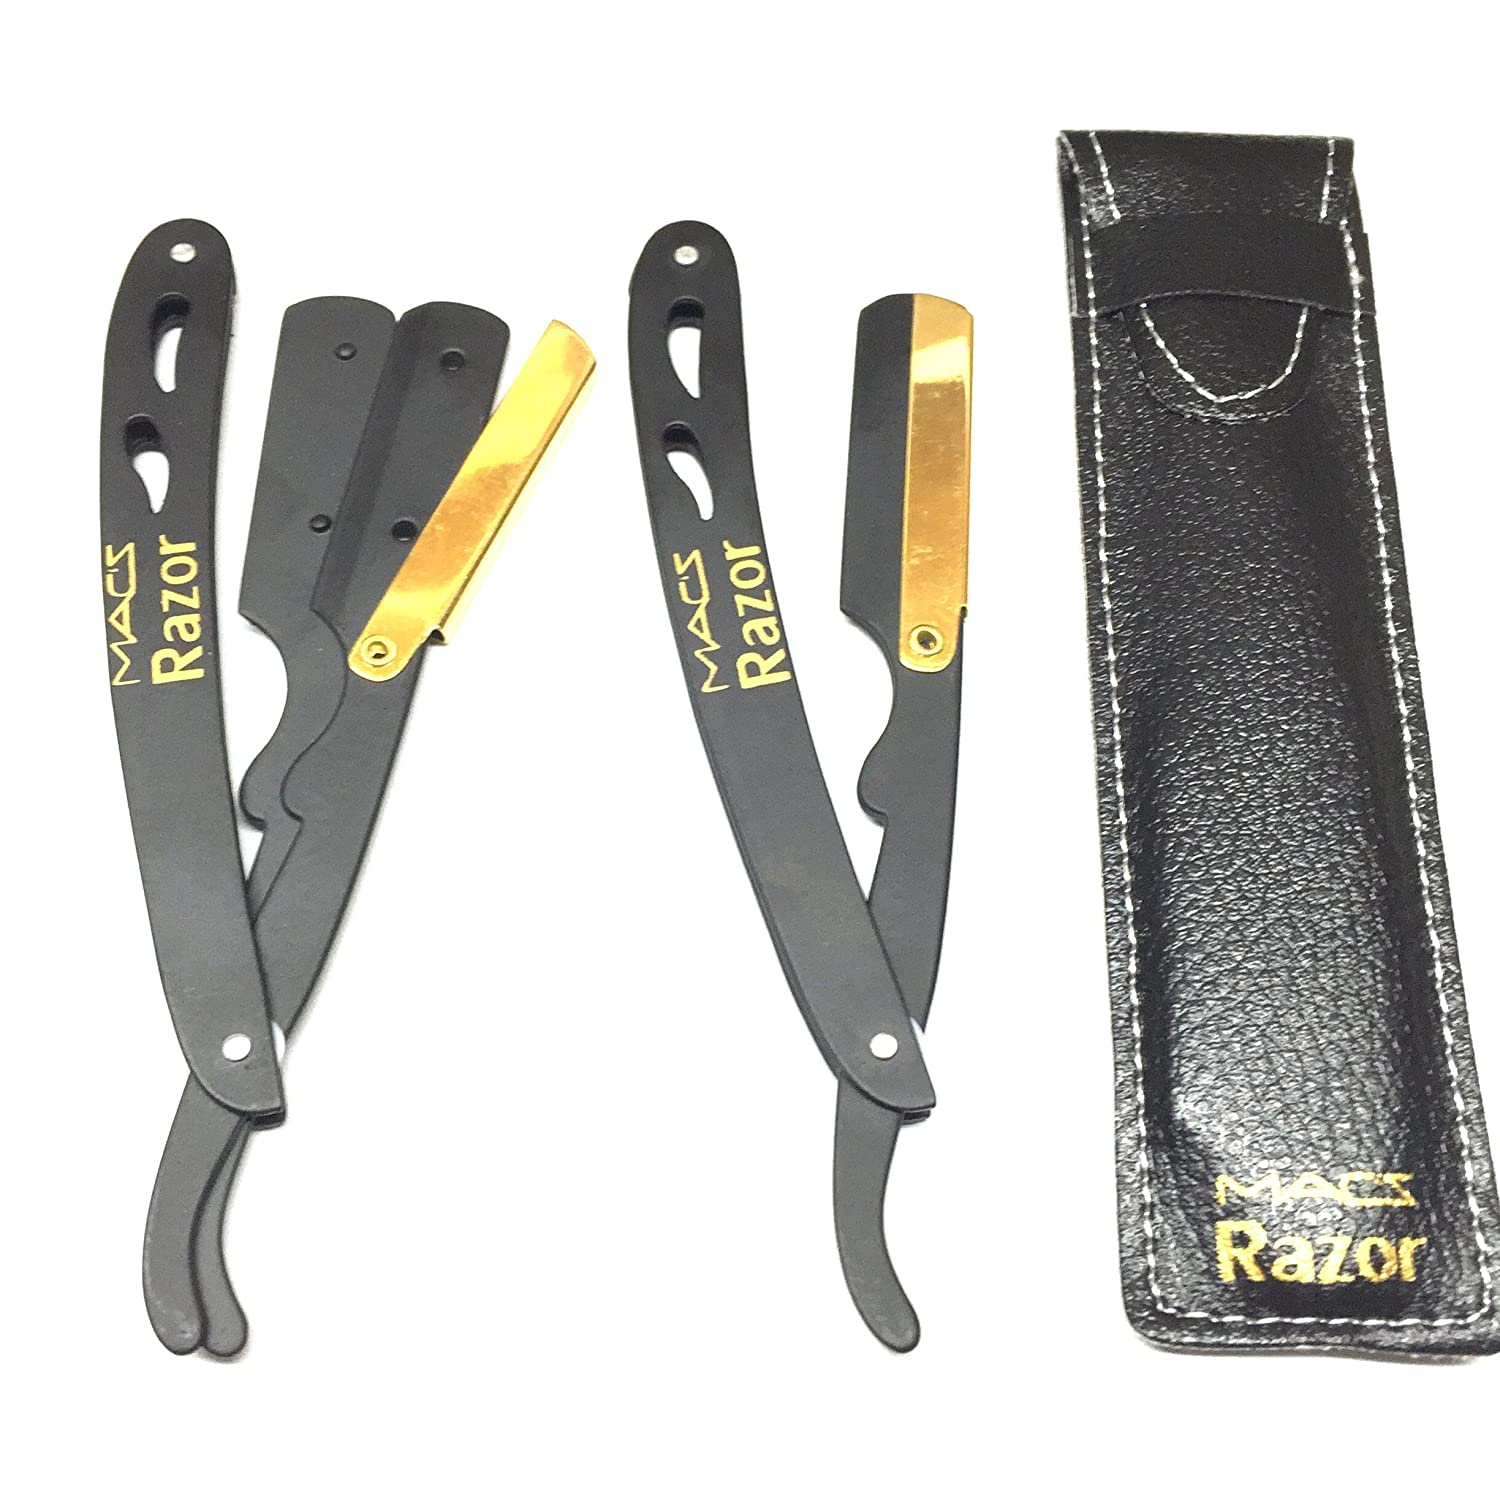 BLACK & GOLD COMBINATION Stainless Steel Barber Exchangeale Blade Straight Edge Barber Shaving Razor with Easy To Replace The Blades -Macs-045B Macs Razor products